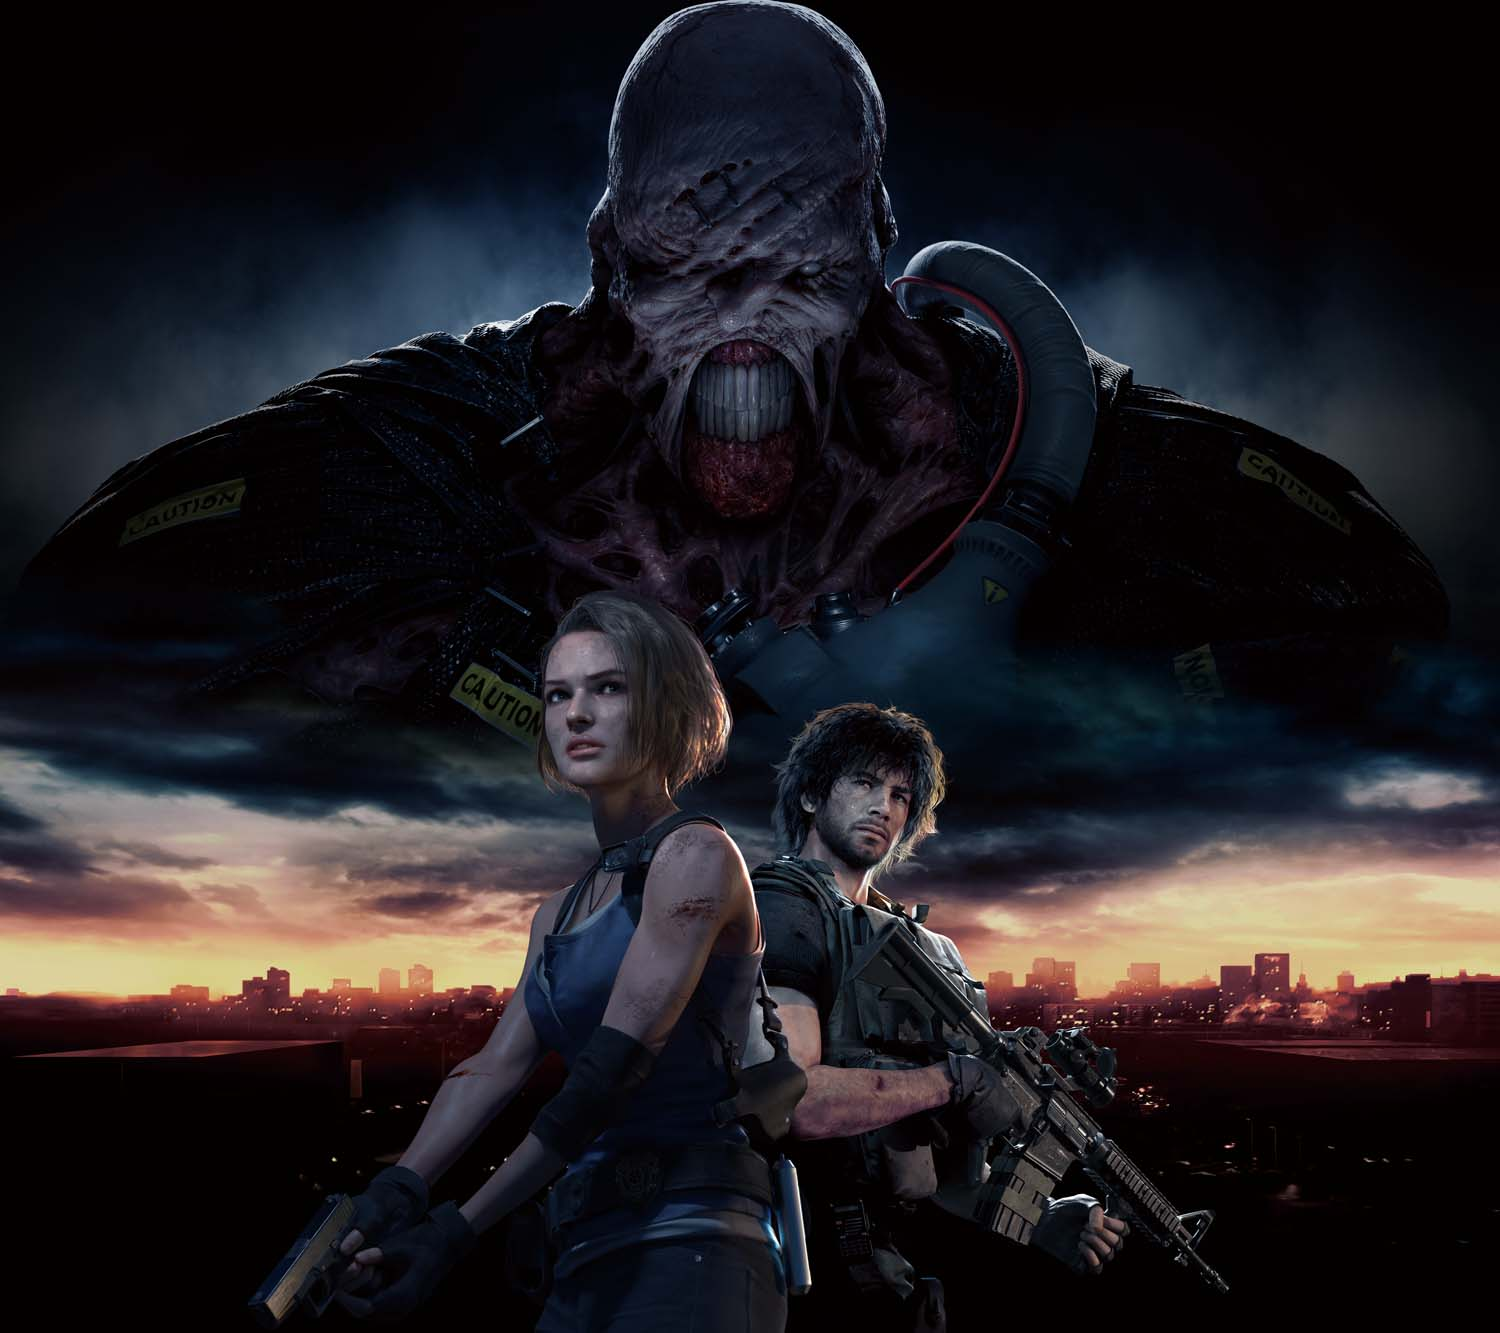 A poster from the Resident Evil 3 remake